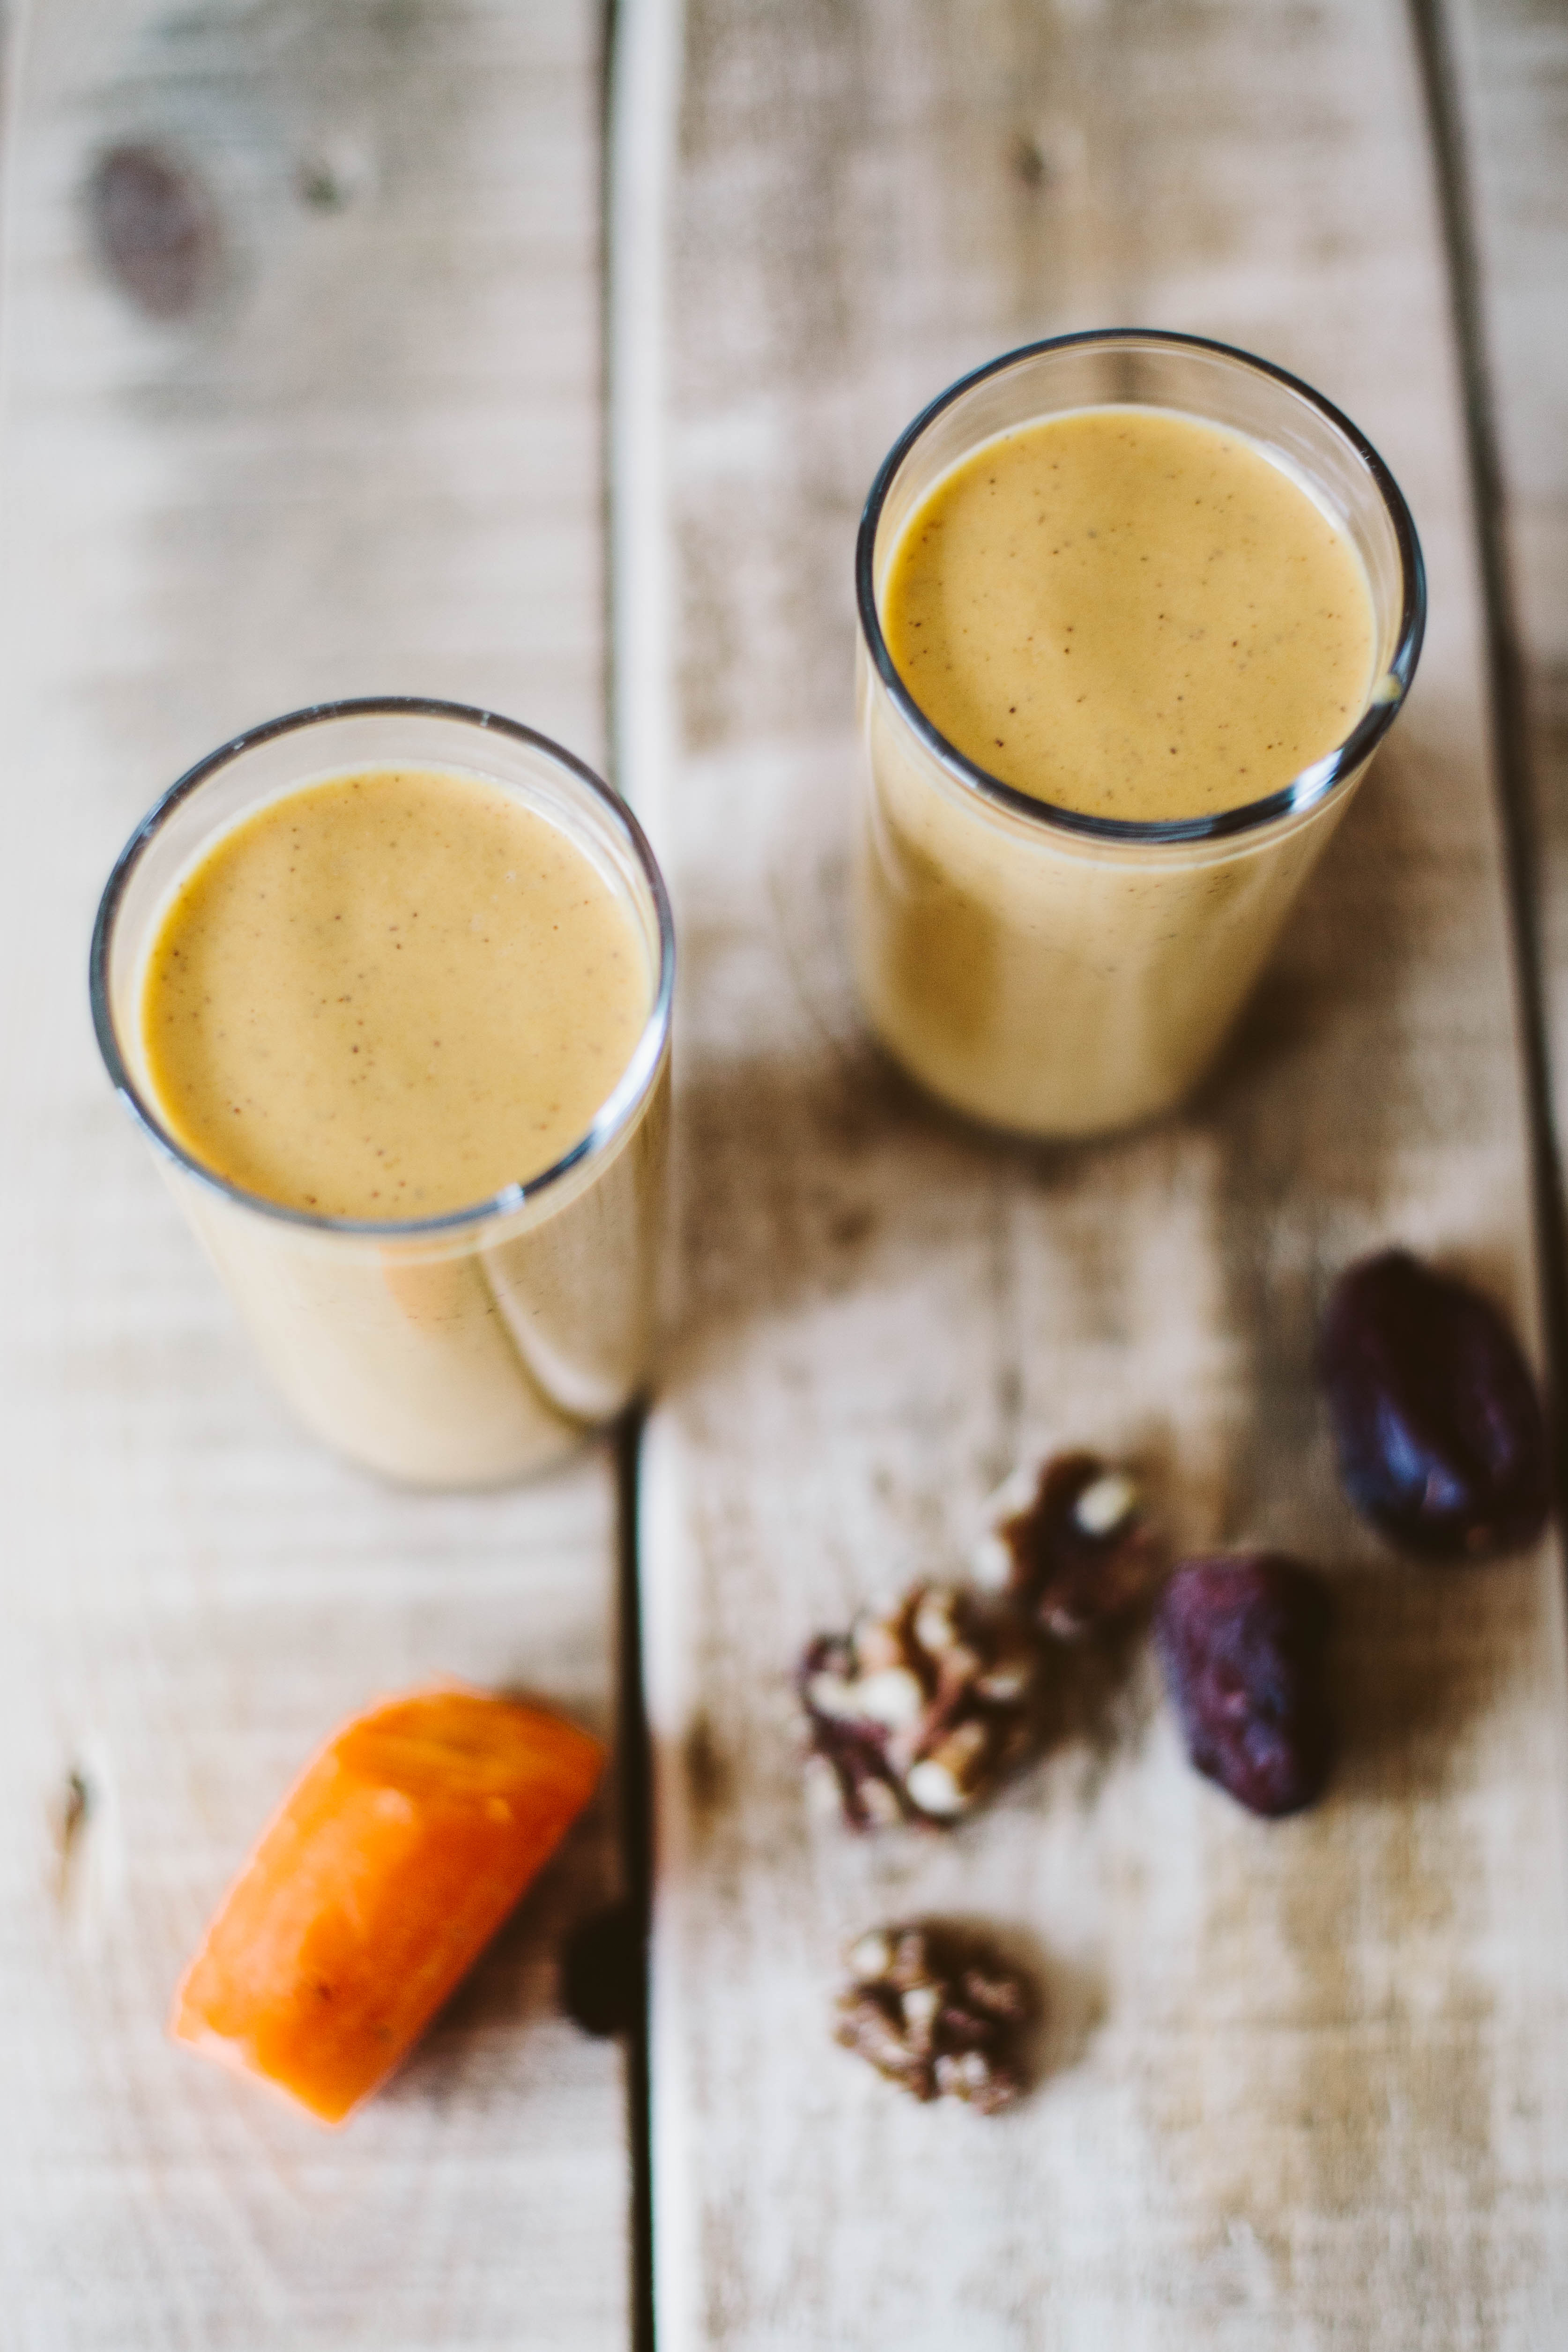 Carrot Cake Smoothie (Banana-free, sugar-free, paleo, raw, vegan)